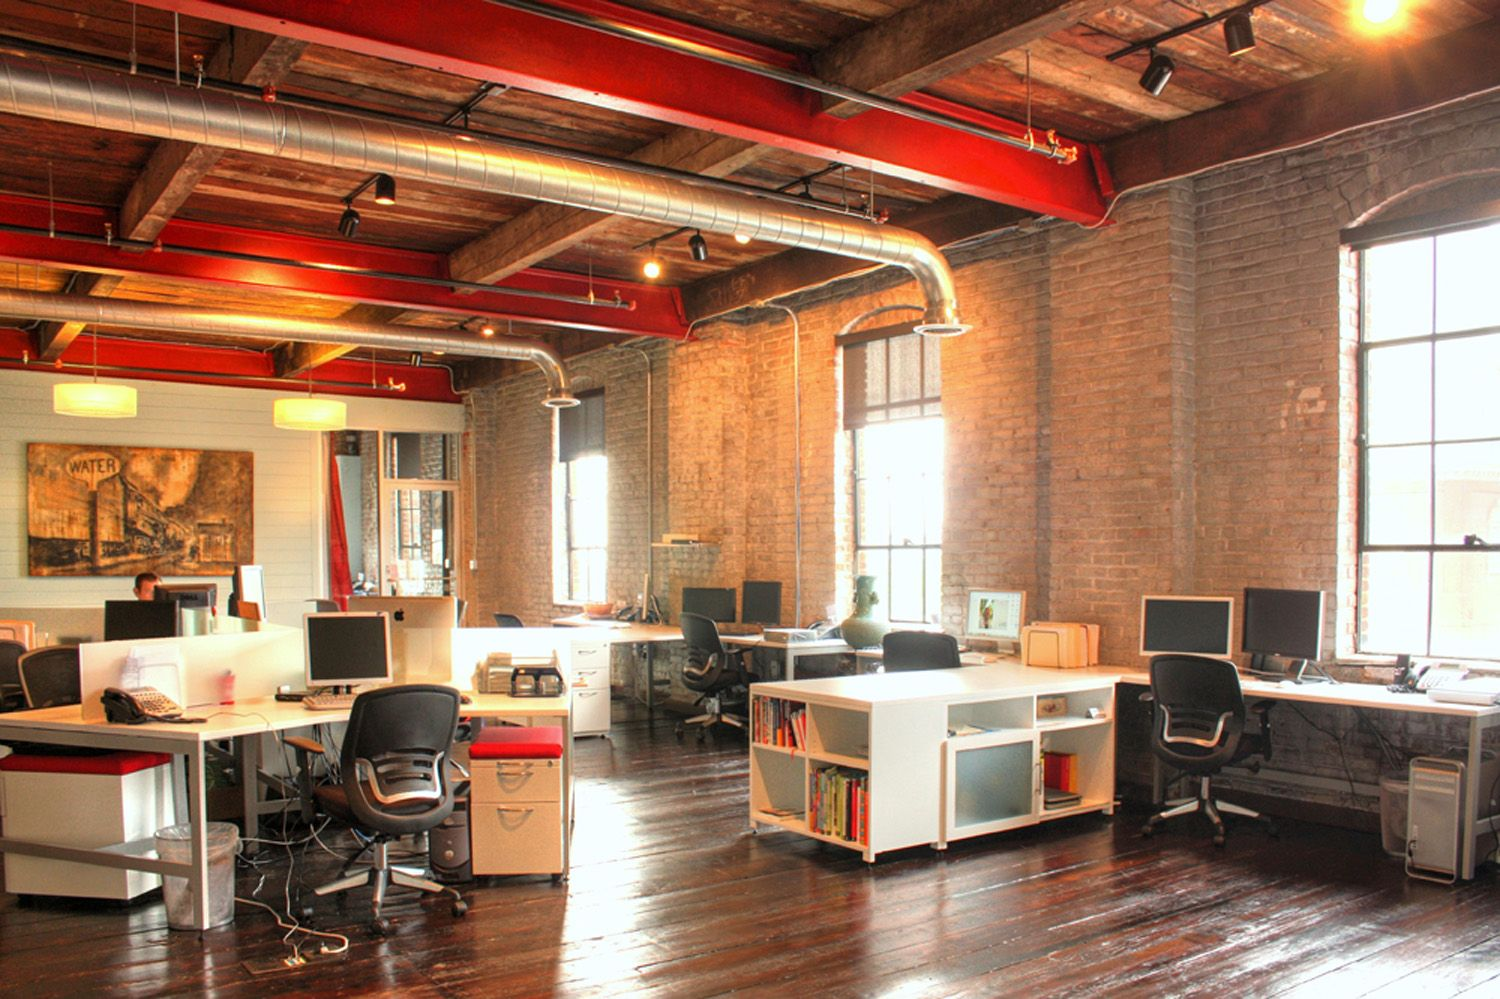 17 Best images about Warehouse Office Space on Pinterest  Loft